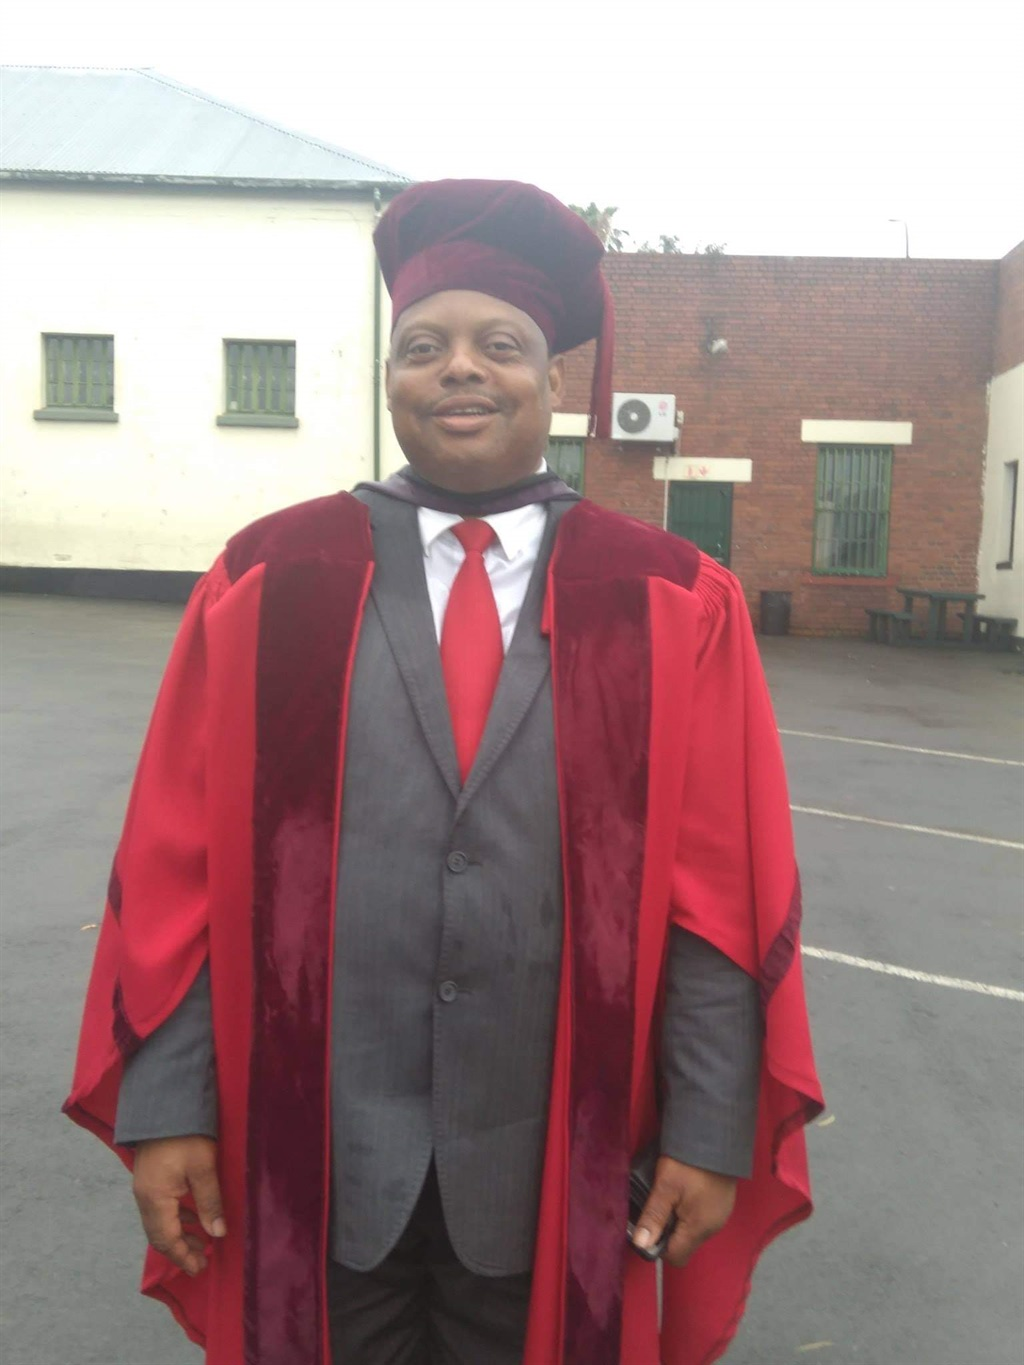 DR Muzi Sibiya, the founder and station manager of